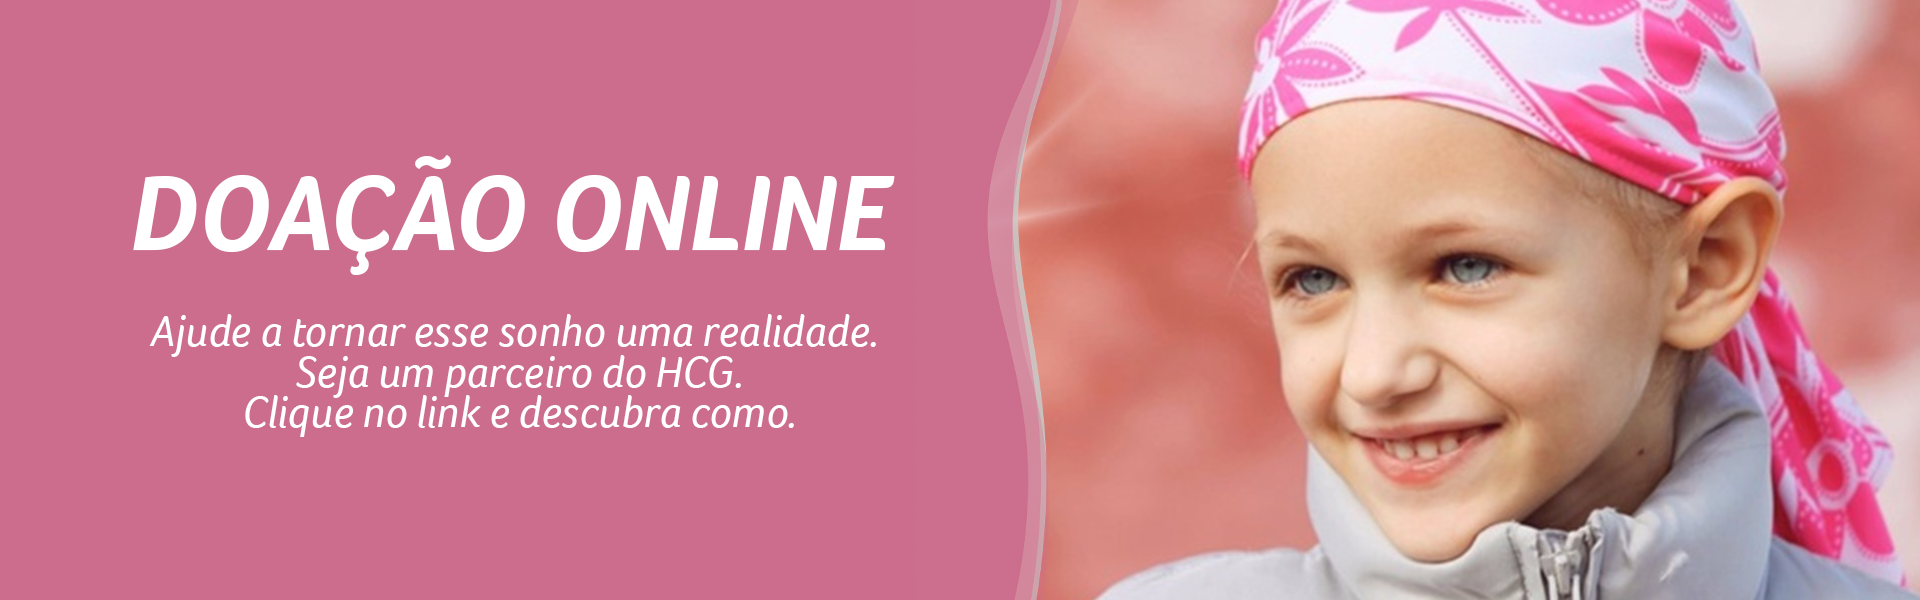 HCG - Hospital do Câncer de Goiás